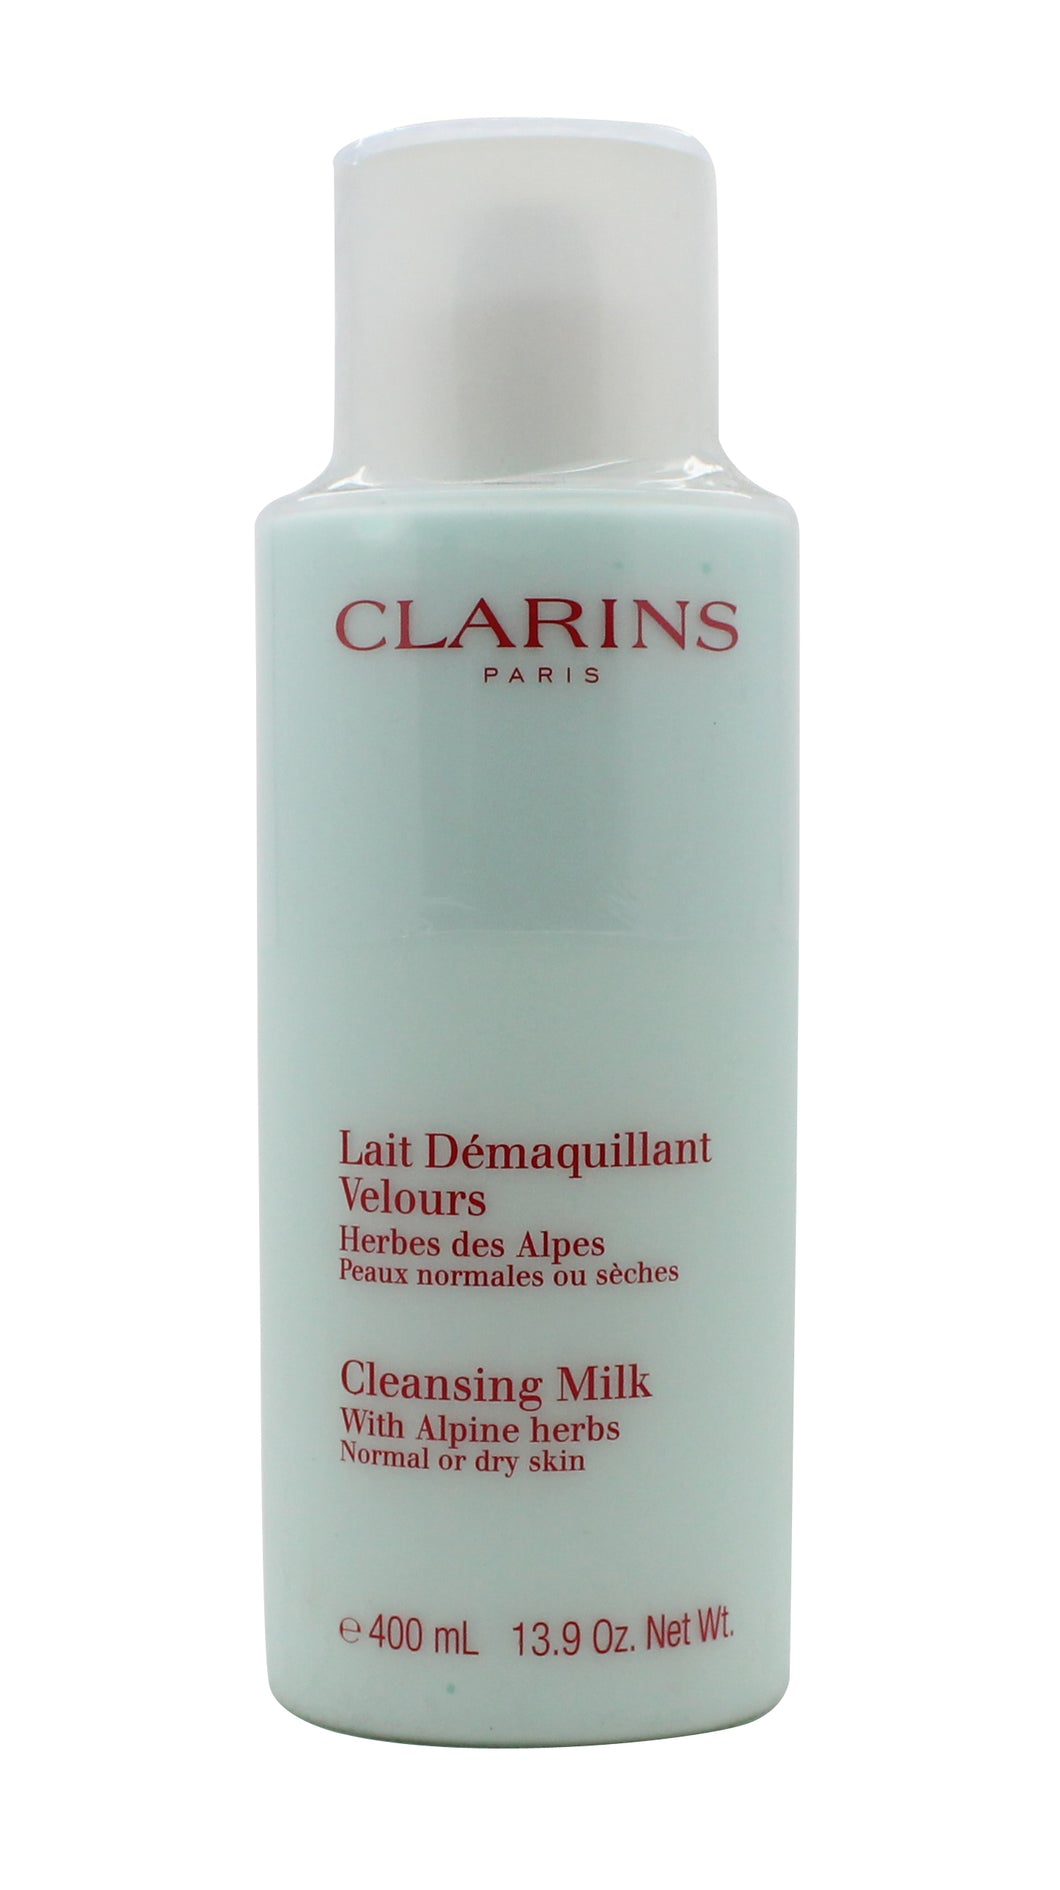 Clarins Cleansers and Toners Cleansing Milk with Alpine Herbs - Dry/Normal Skin 400ml